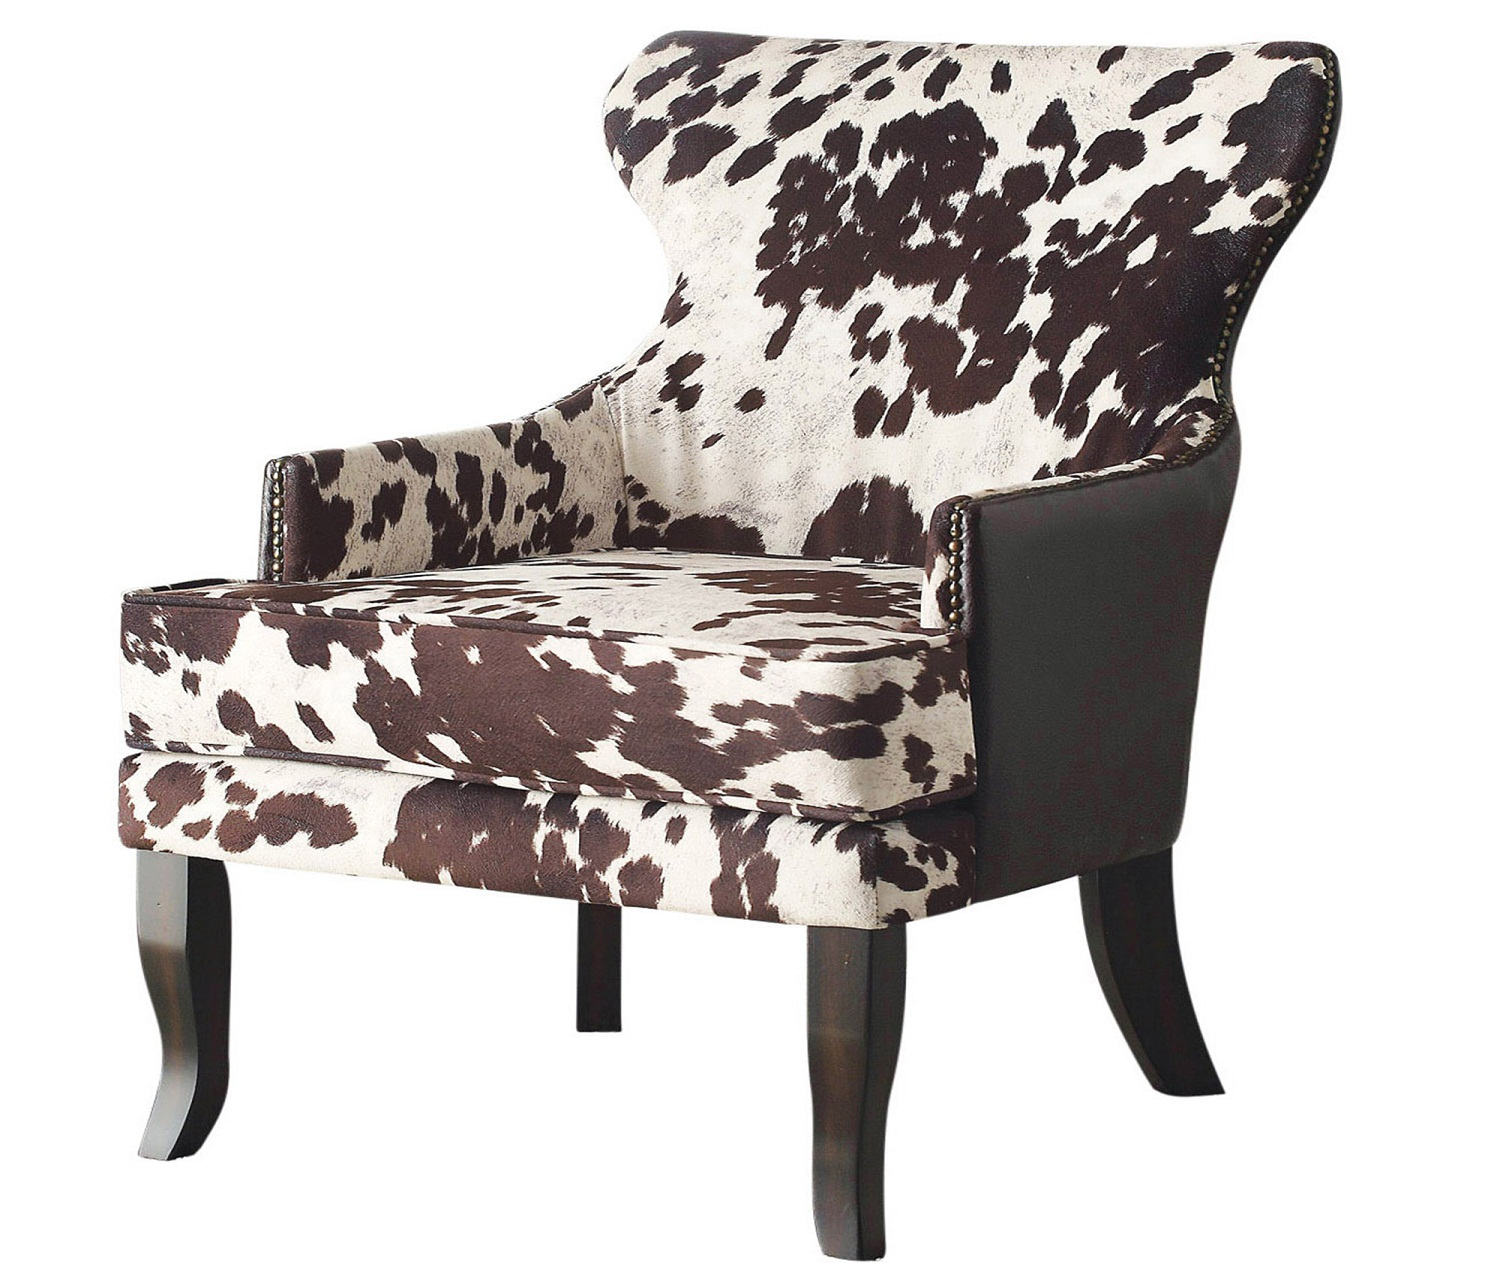 ANGUS II-ACCENT CHAIR-BROWN, 841173015657, Accent Chairs by Midha Furniture to Brampton, Mississauga, Etobicoke, Toronto, Scraborough, Caledon, Oakville, Markham, Ajax, Pickering, Oshawa, Richmondhill, Kitchener, Hamilton and GTA area